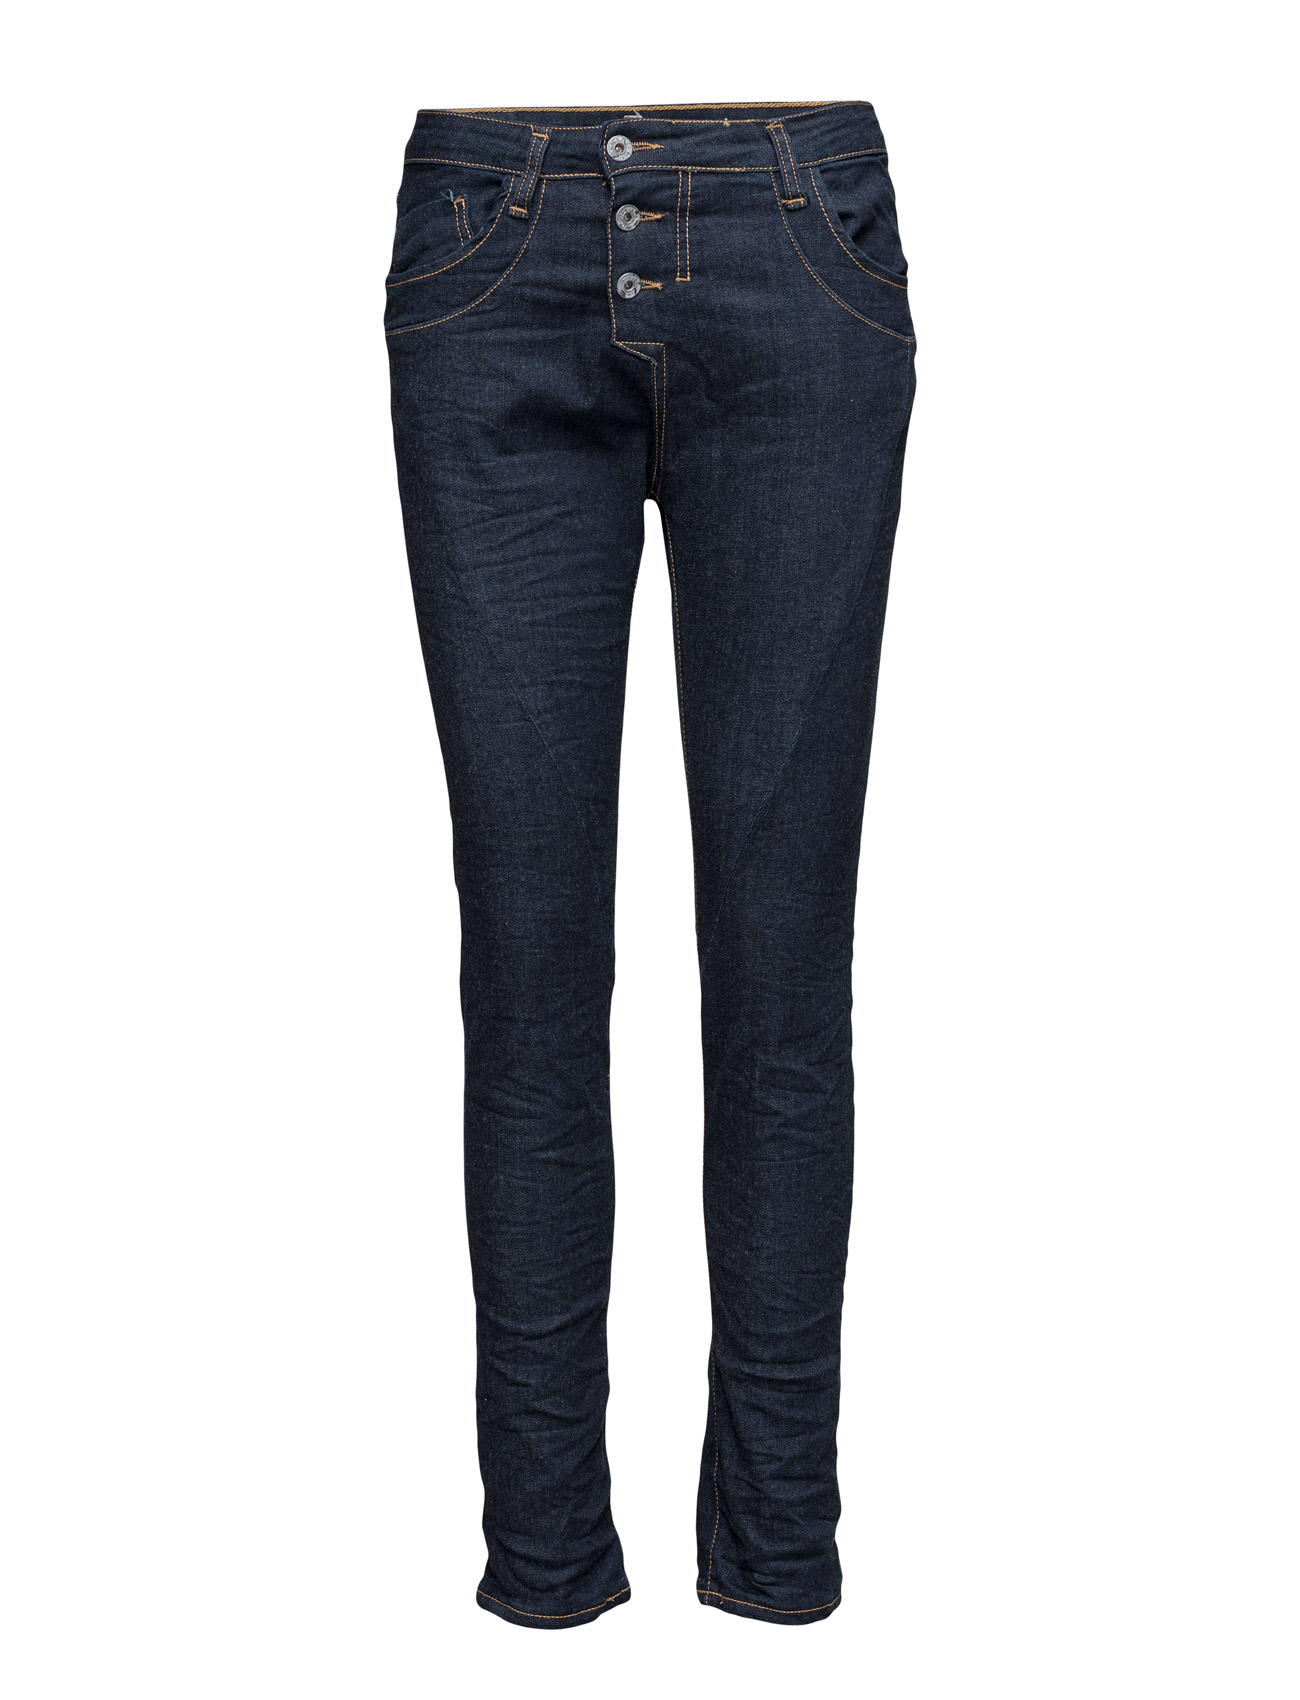 Classic Original Denim Stretch Please Jeans Bukser til Damer i Denim